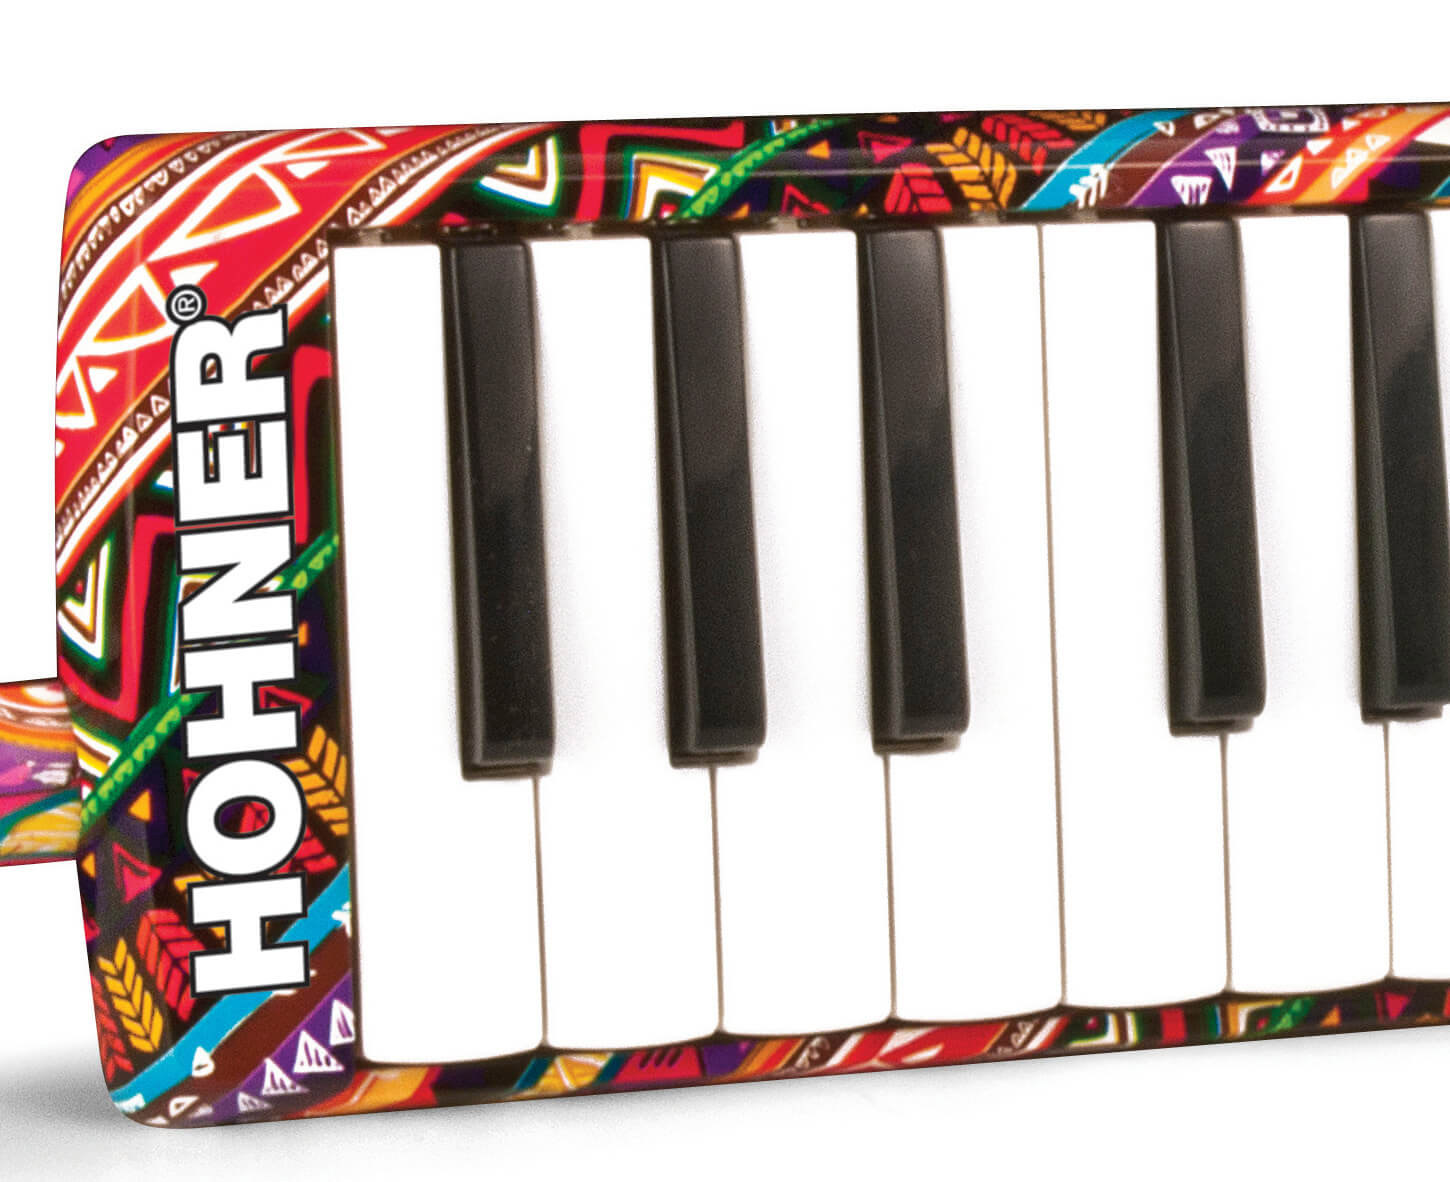 Hohner 9445/37 Airboard 37